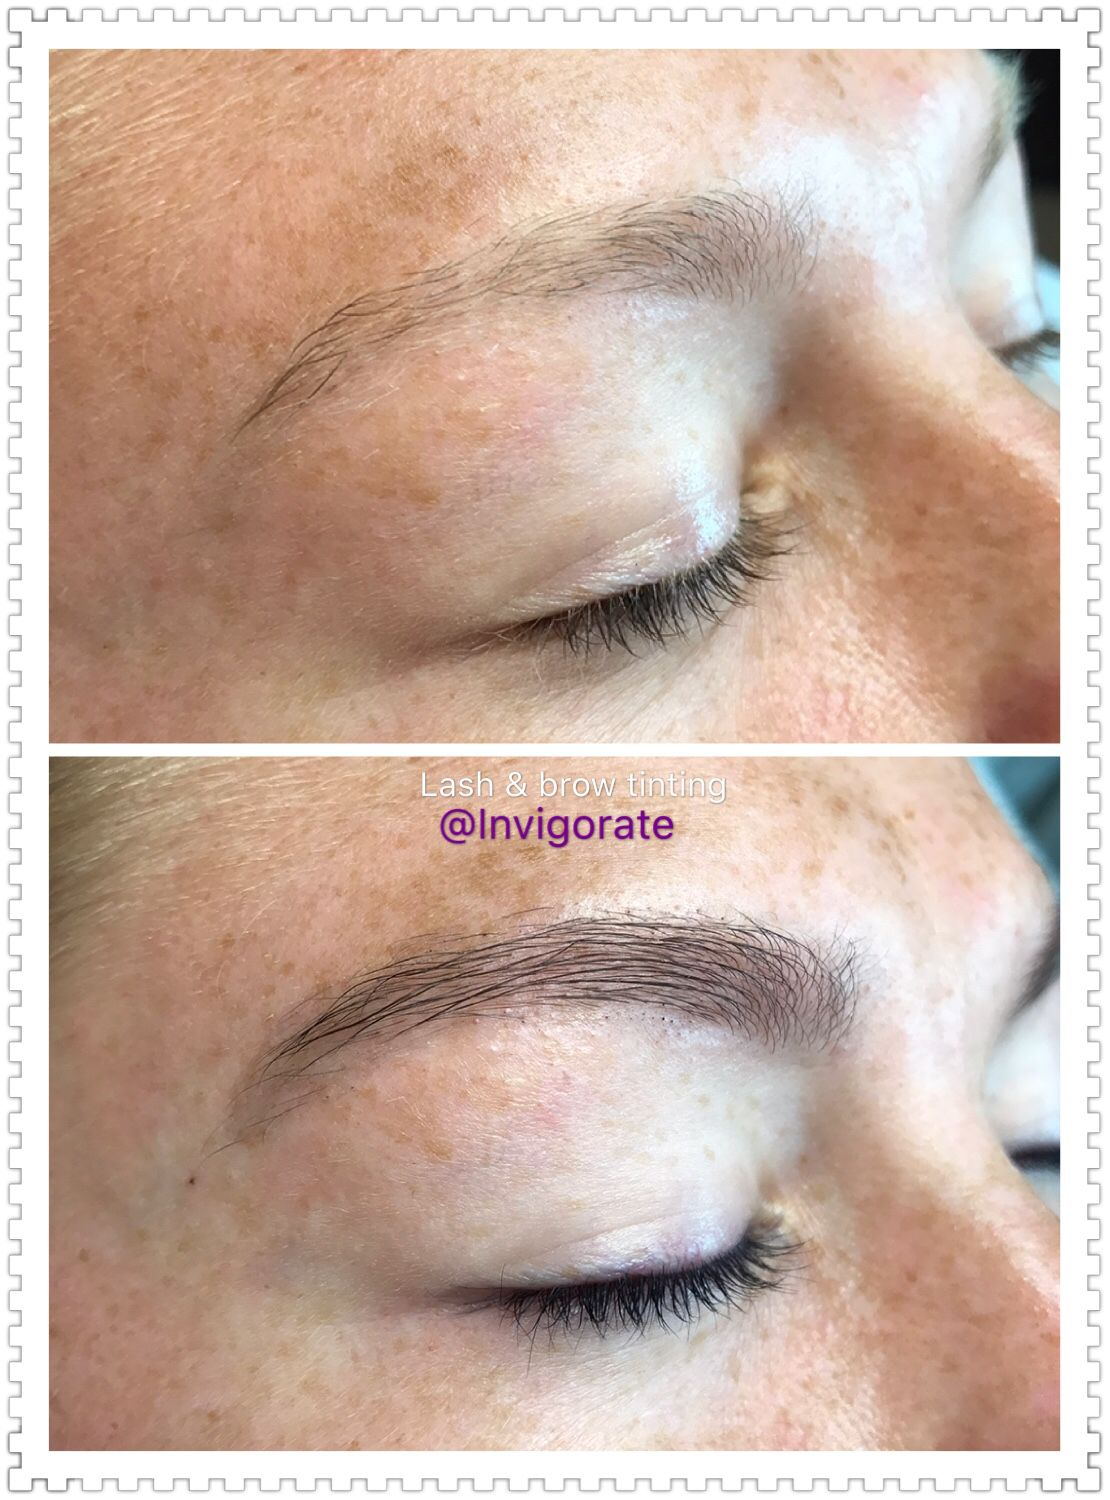 Pin by Invigorate on Eyelash and eyebrow tinting | Pinterest | Brows ...